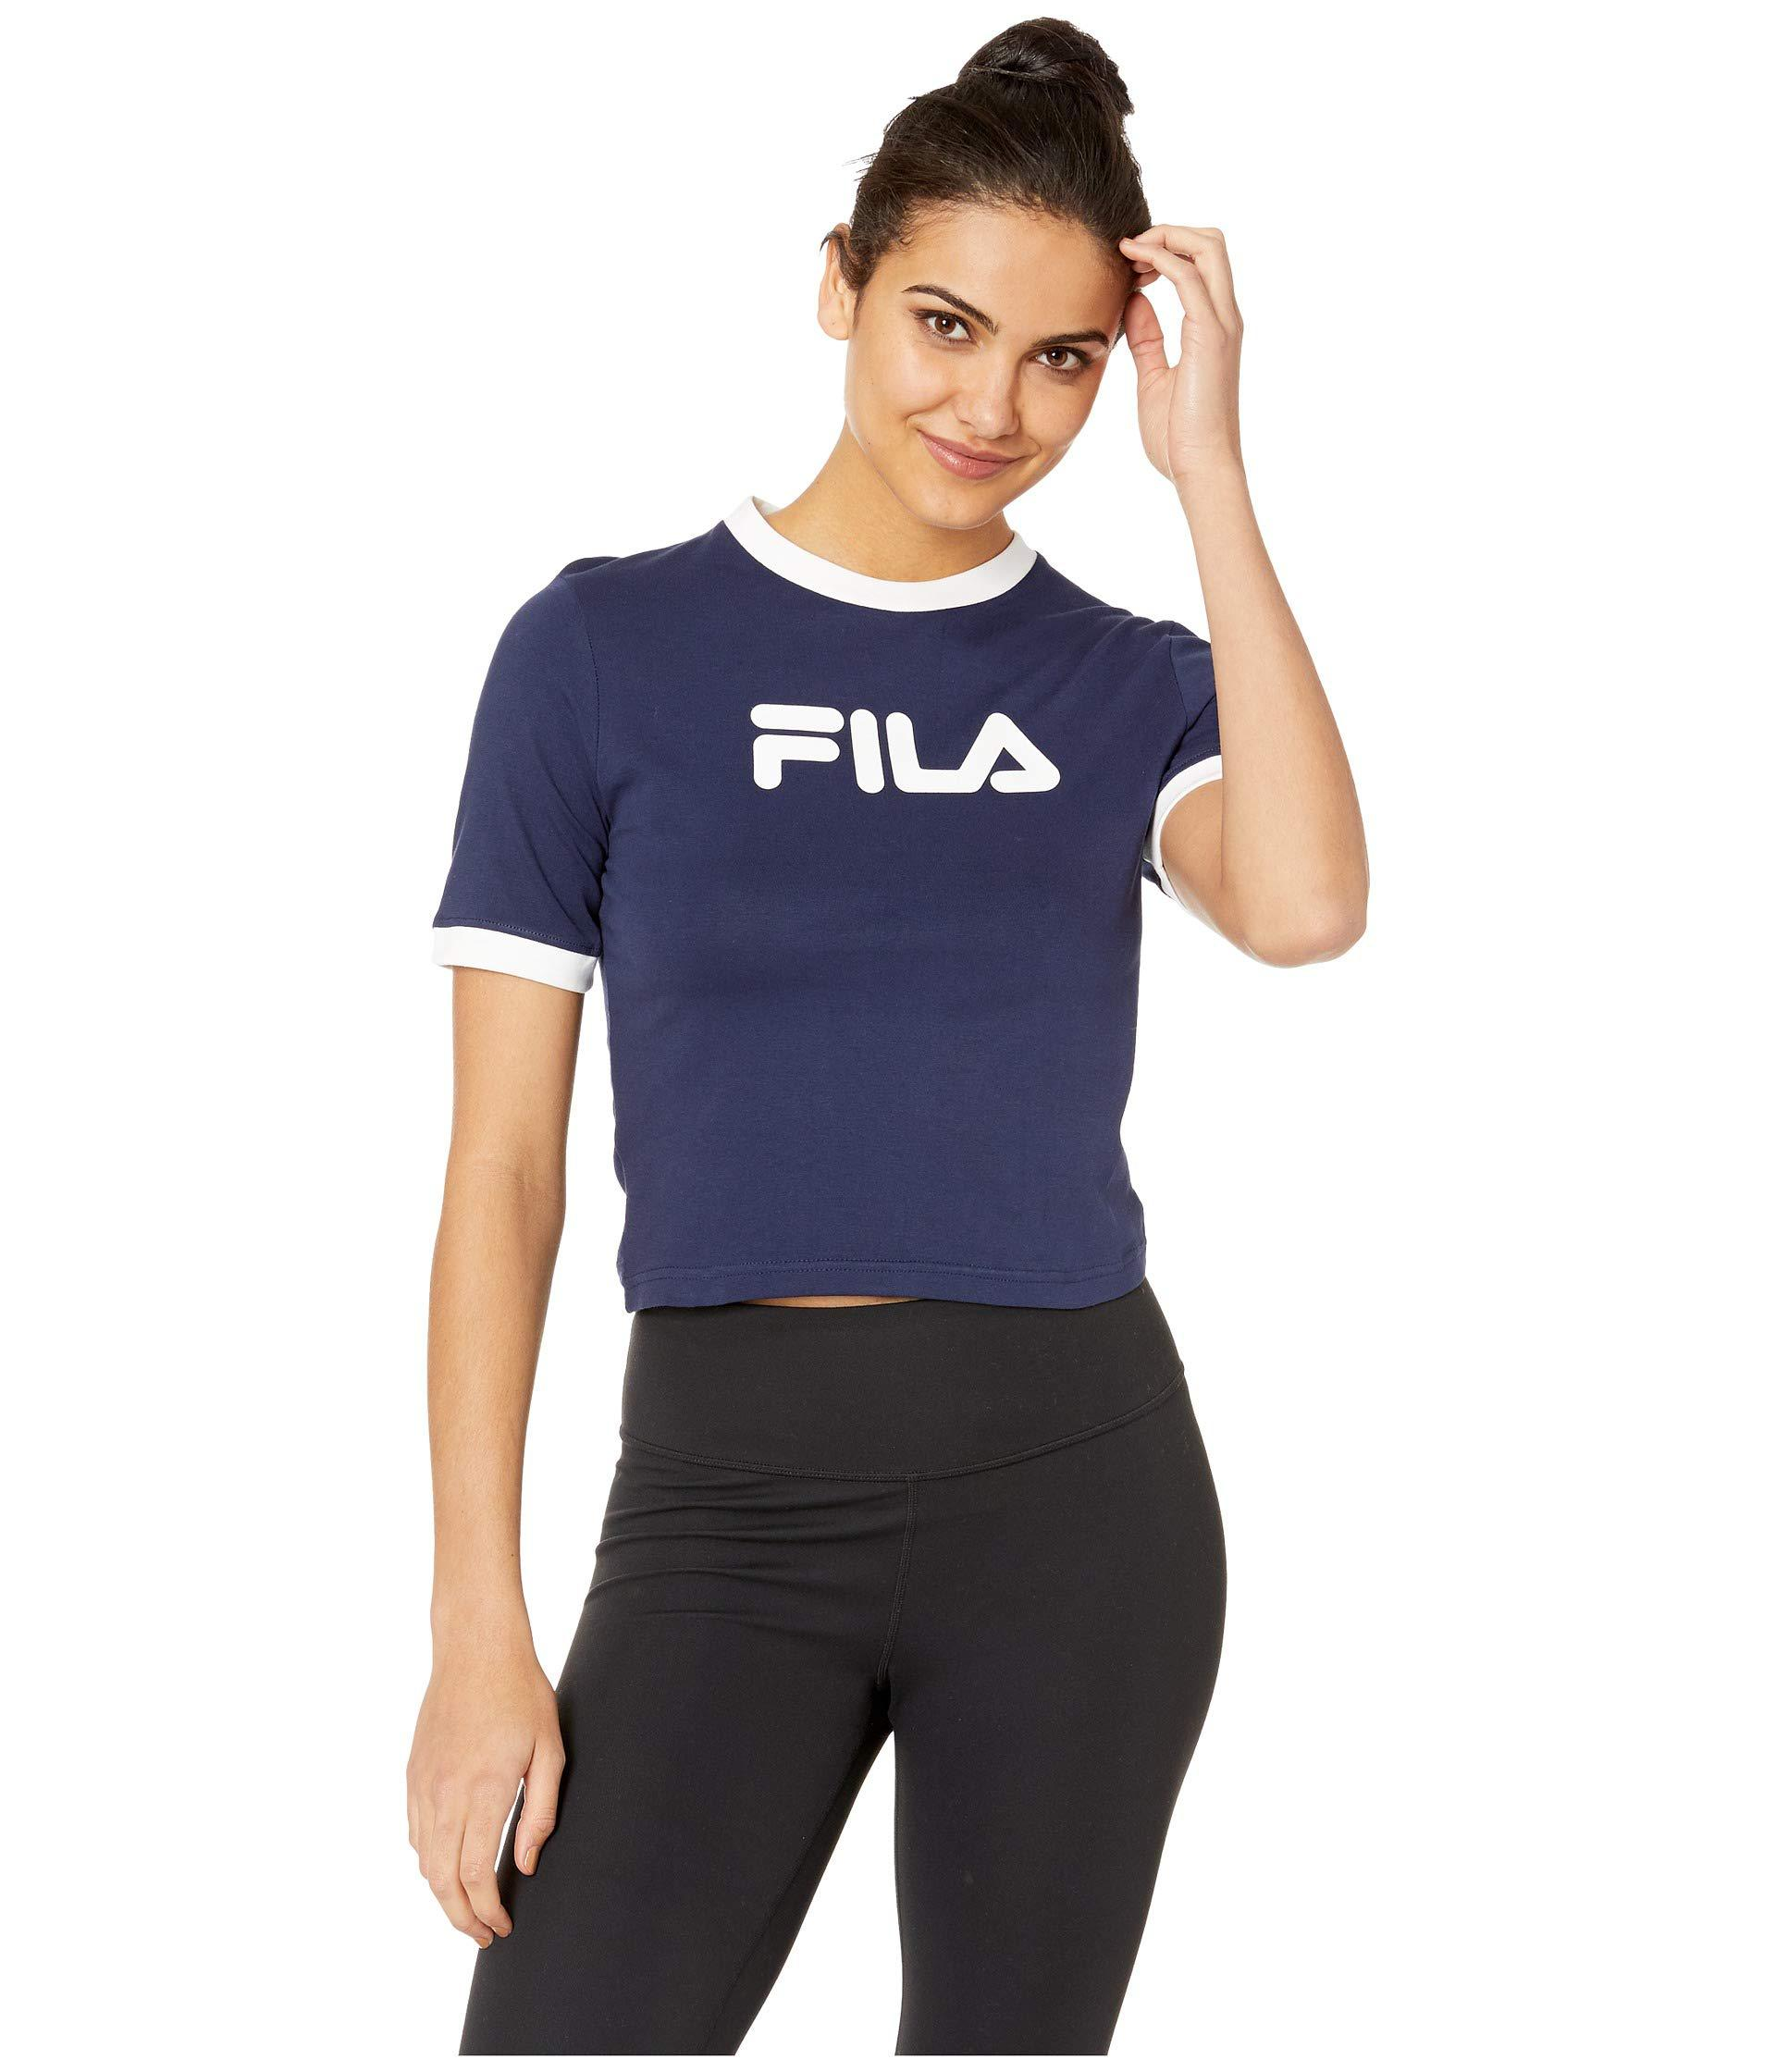 a666fb50ff3 Fila Tionne Crop Tee (black/white) Women's T Shirt - Lyst